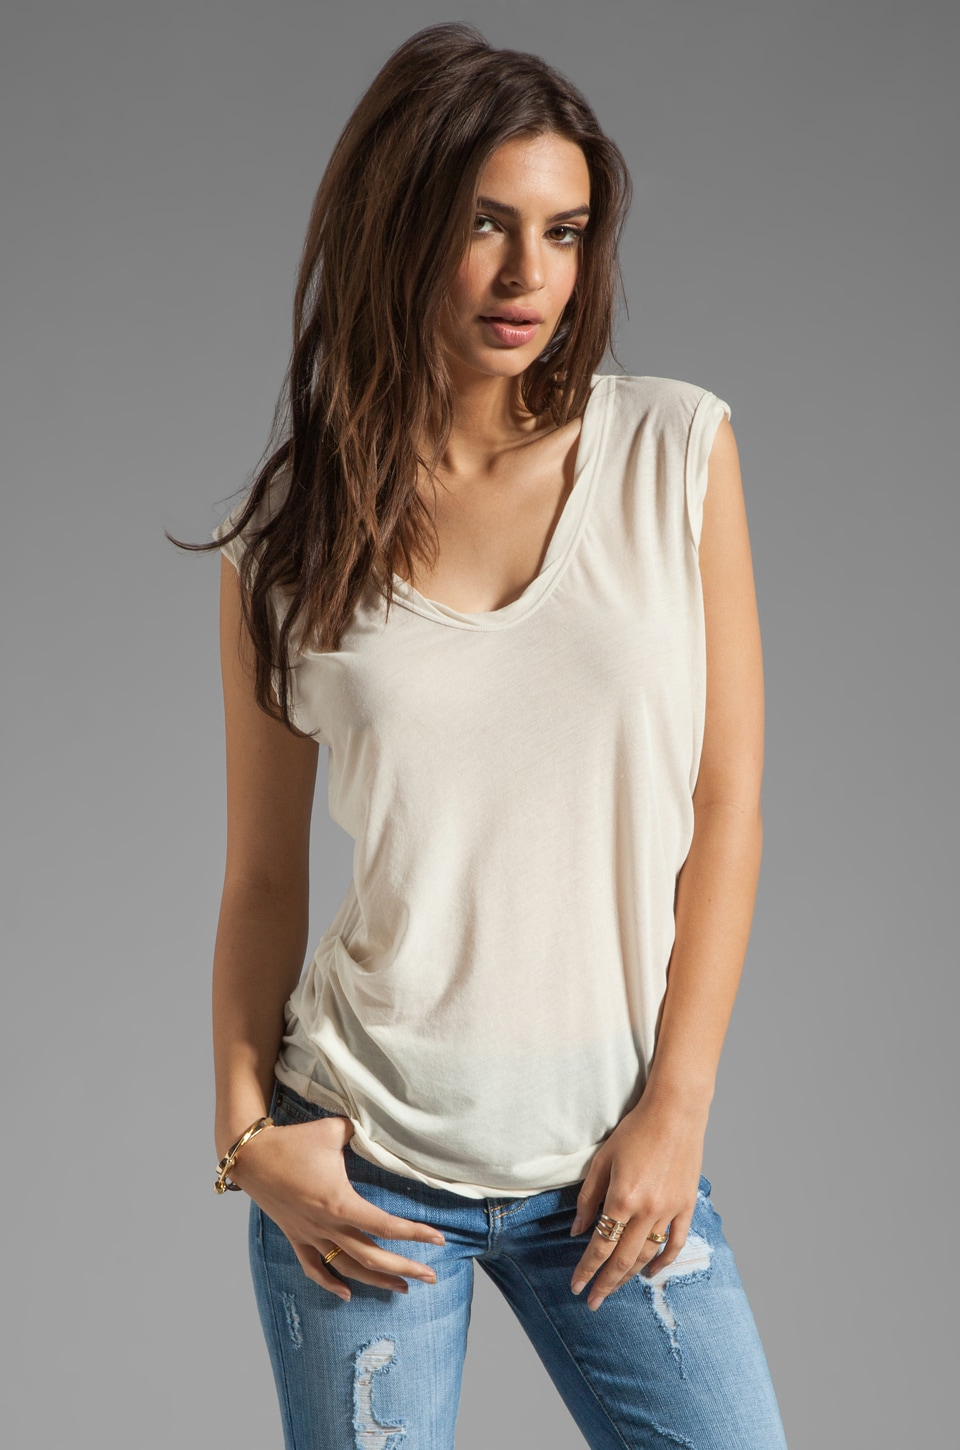 James Perse Asymmetrical Shell Top in Stone